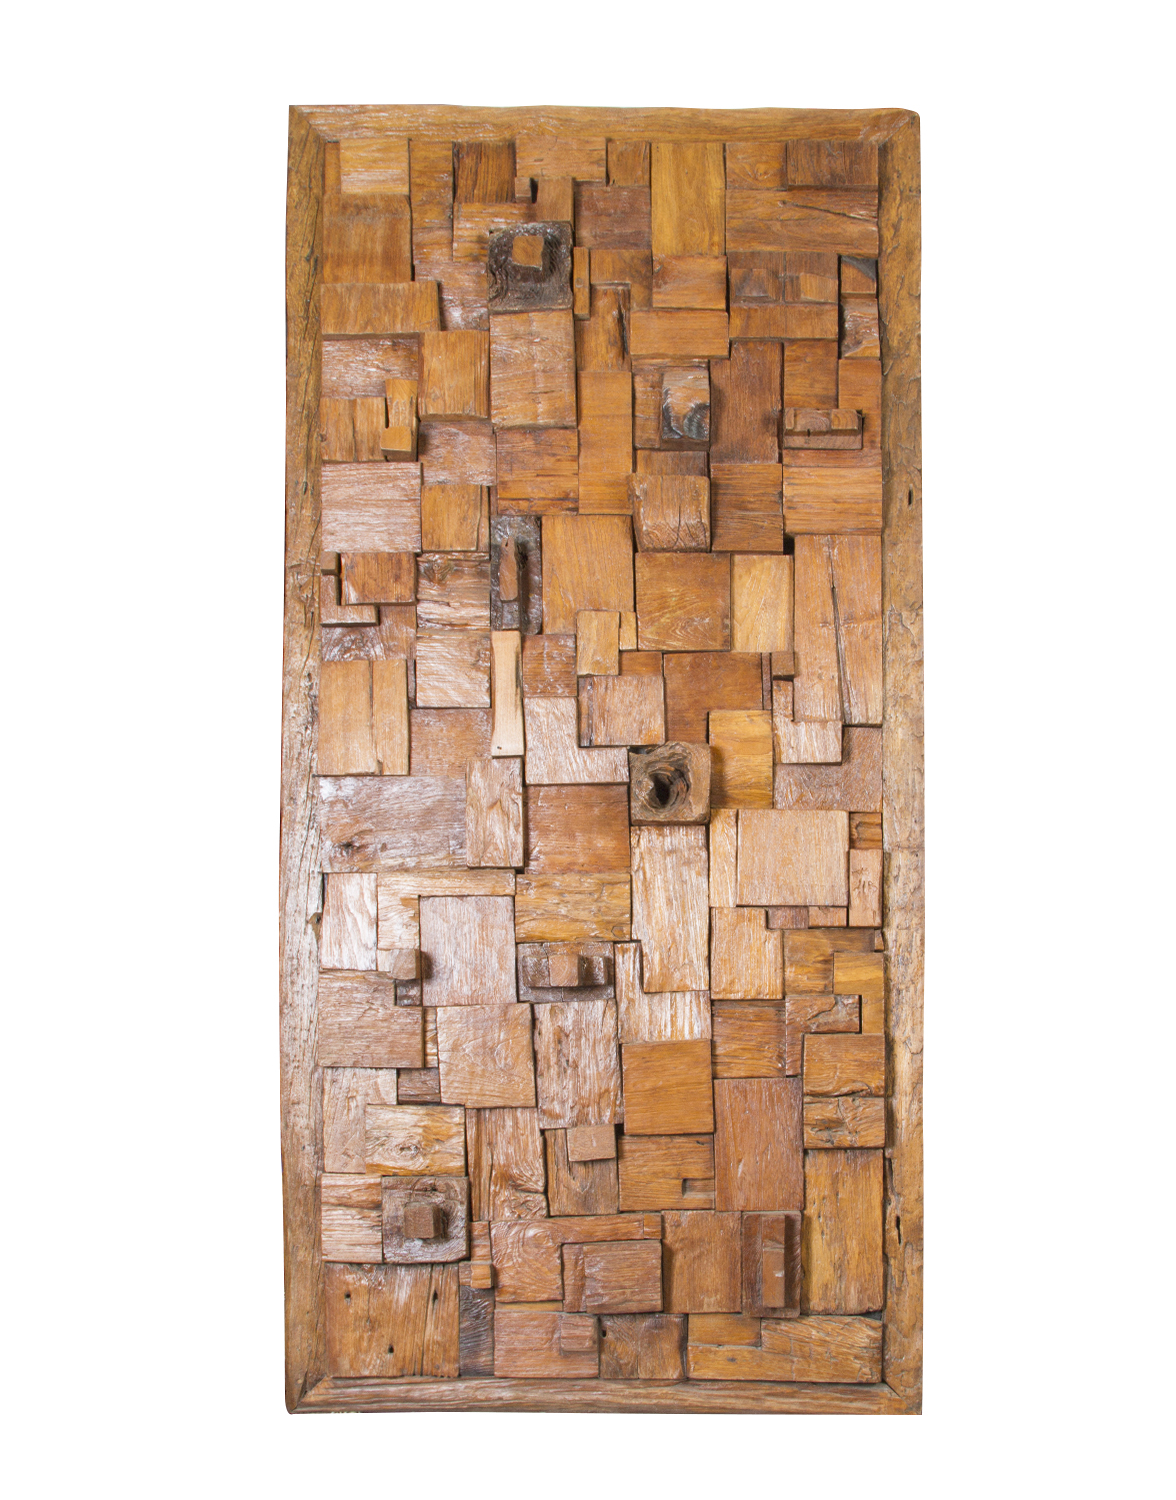 Recycled wood panel